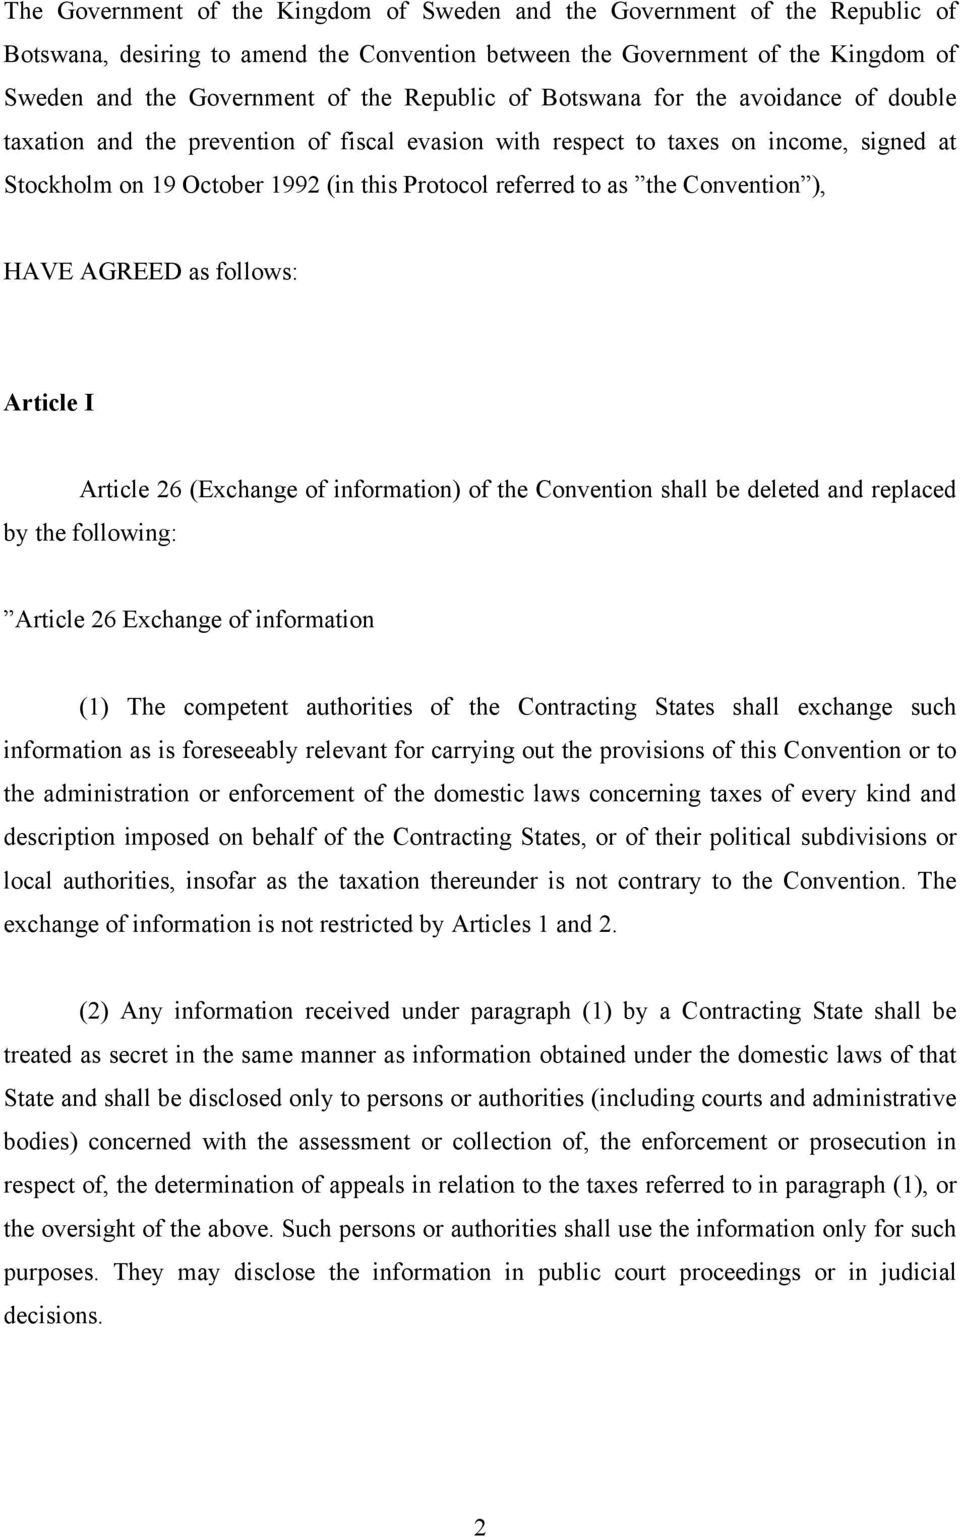 the Convention ), HAVE AGREED as follows: Article I Article 26 (Exchange of information) of the Convention shall be deleted and replaced by the following: Article 26 Exchange of information (1) The